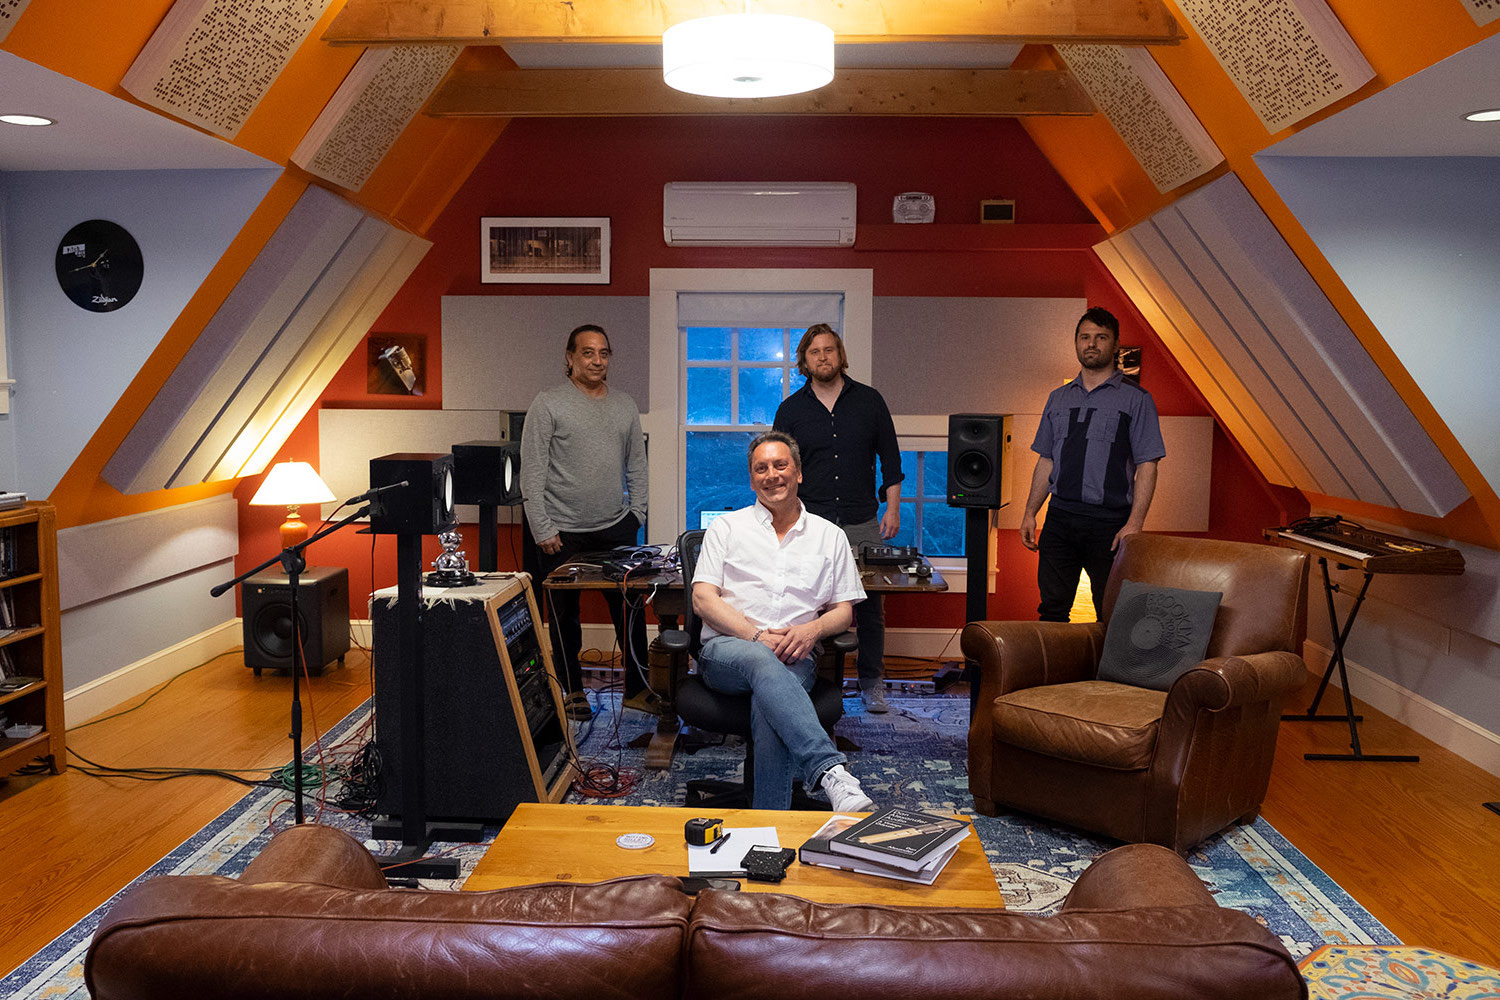 Rob Jaczko Abbott Road Studio, an all-in-one room with perfect internal room acoustics designed by WSDG and engaging the NIRO software. Rob and the WSDG team.